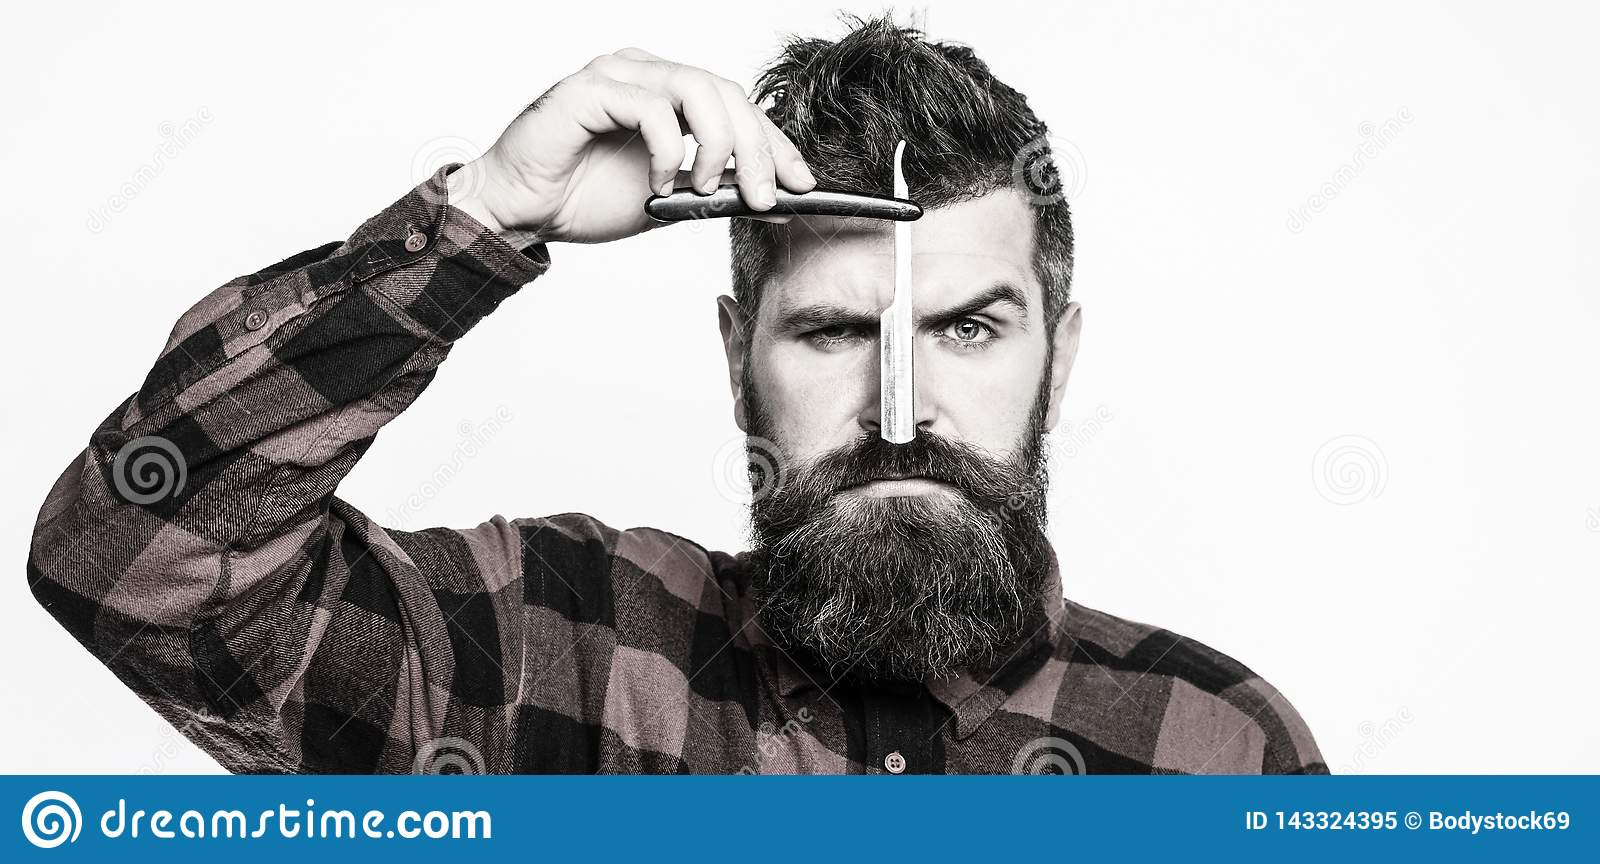 Vintage straight razor. Barbershop service concept. Handsome bearded hairdresser is holding a straight razor while